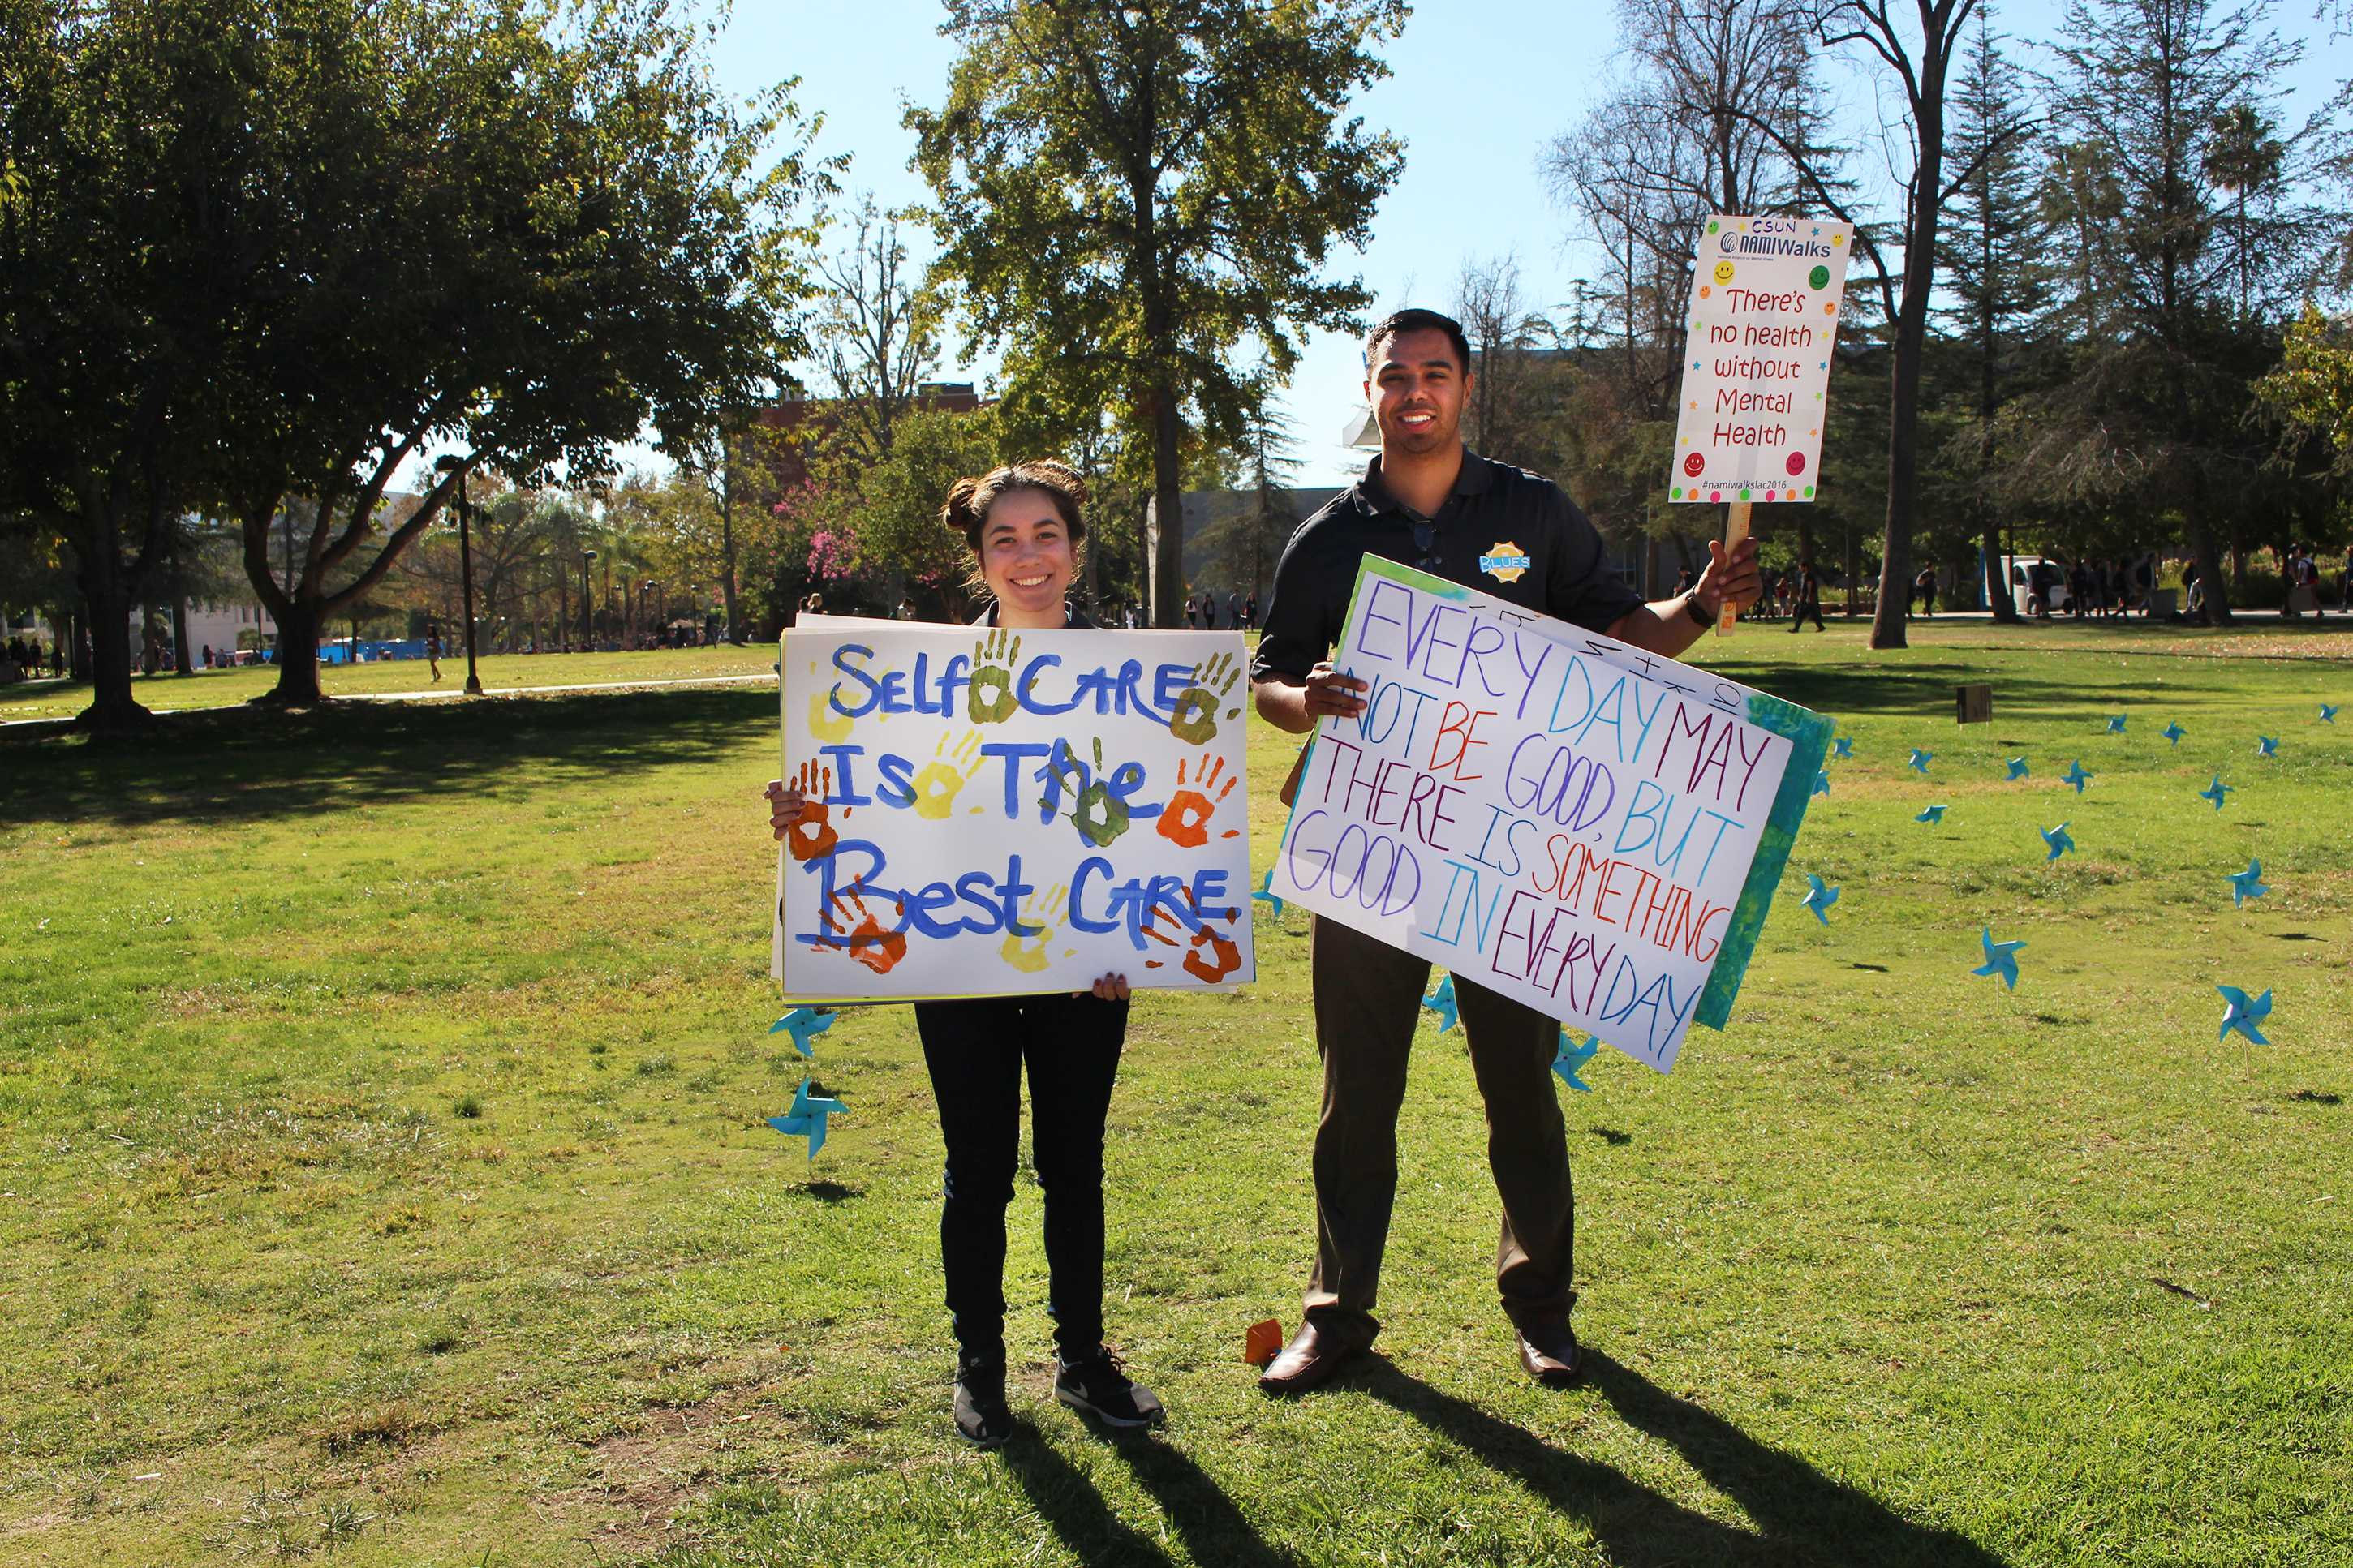 Two students hold up signs with positive messages